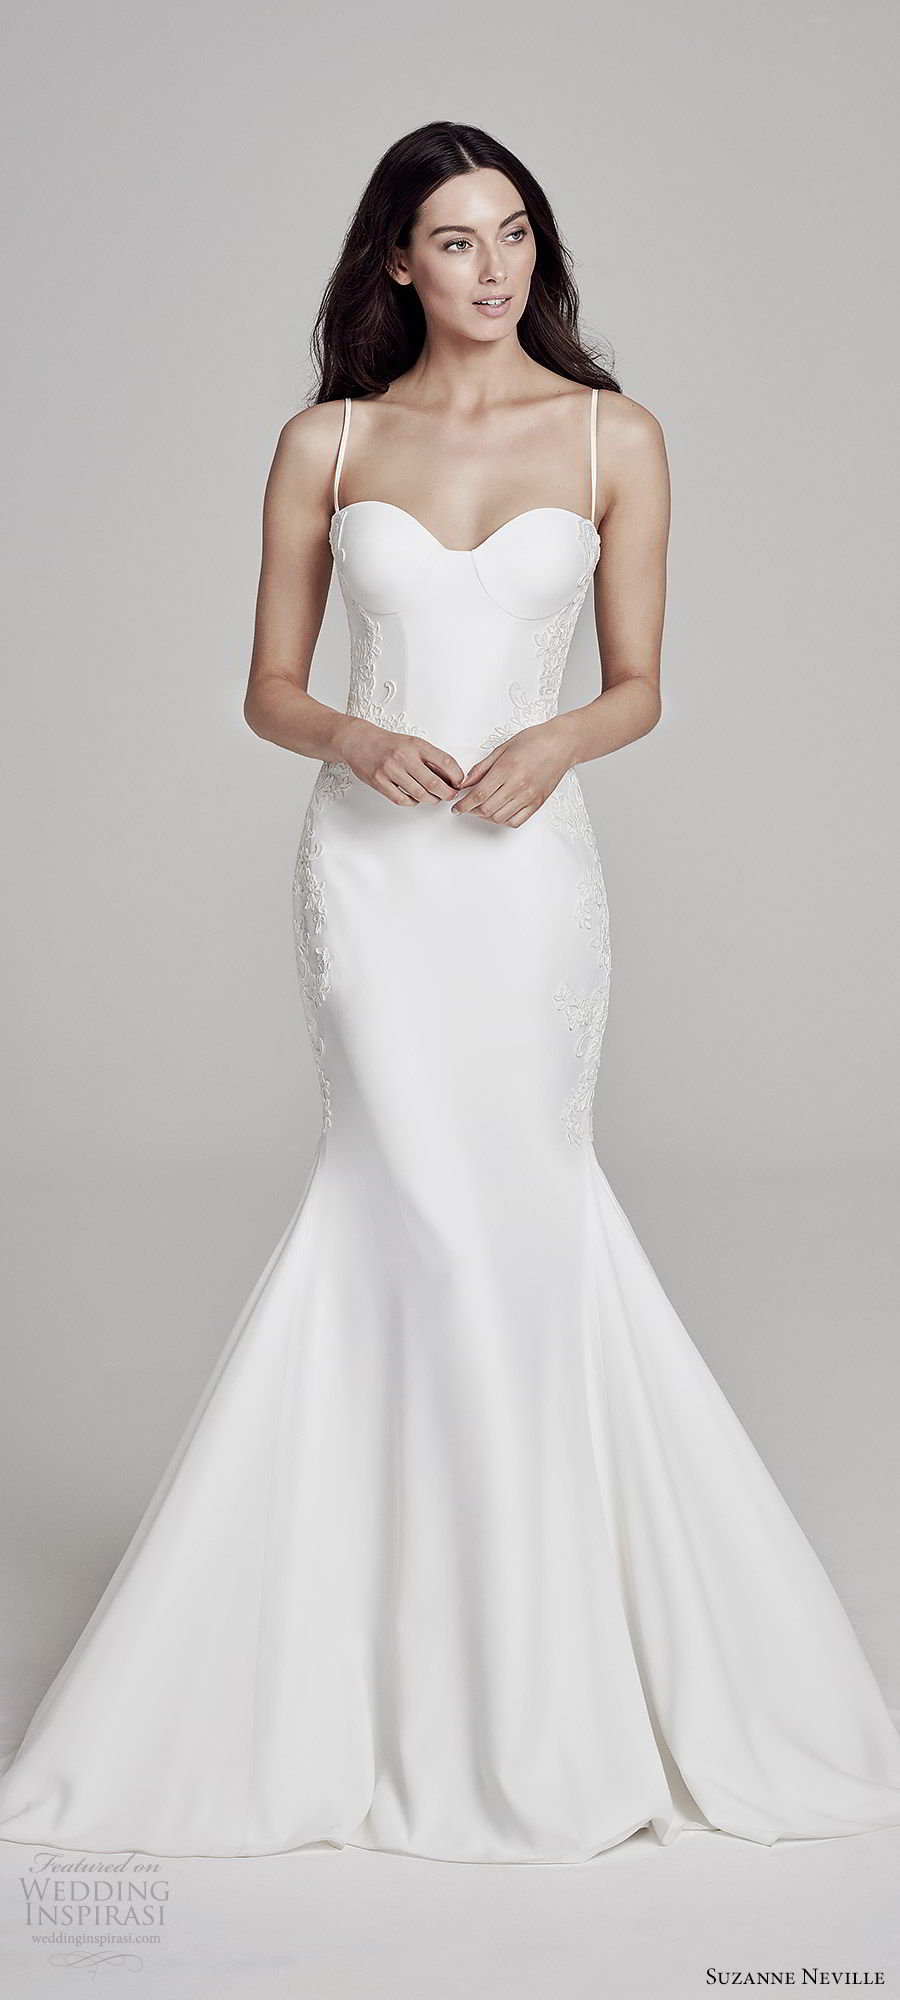 suzanne neville bridal 2019 sleeveless thin straps sweetheart mermaid wedding dress (leandra) sweep train modern elegant mv